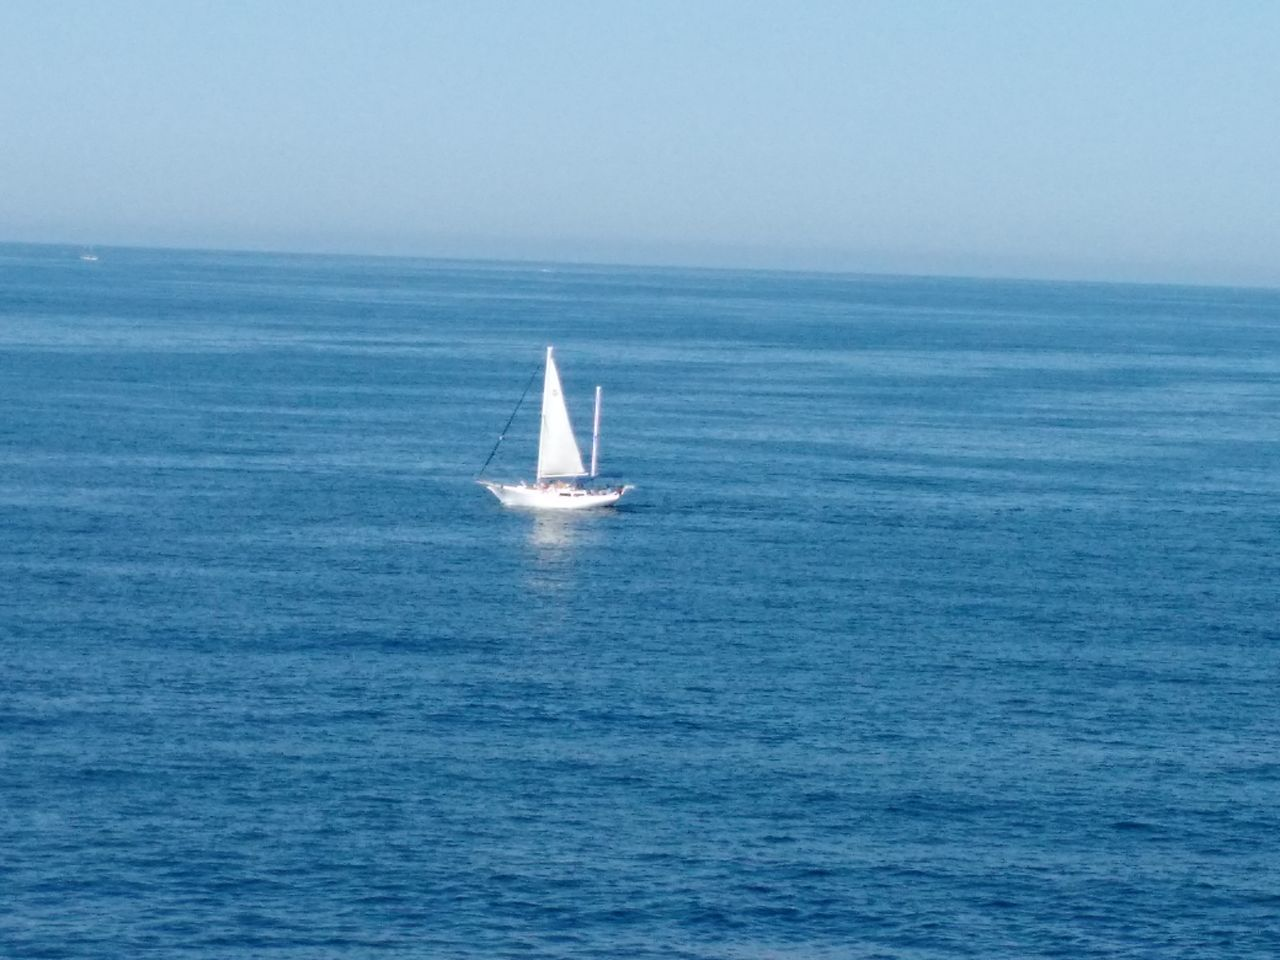 Sailing Sea Nautical Vessel Blue Water Sailboat Travel Clear Sky Vacations Horizon Over Water Sport Adventure Yachting Outdoors Sailing Ship Day Yacht Nature No People Regatta